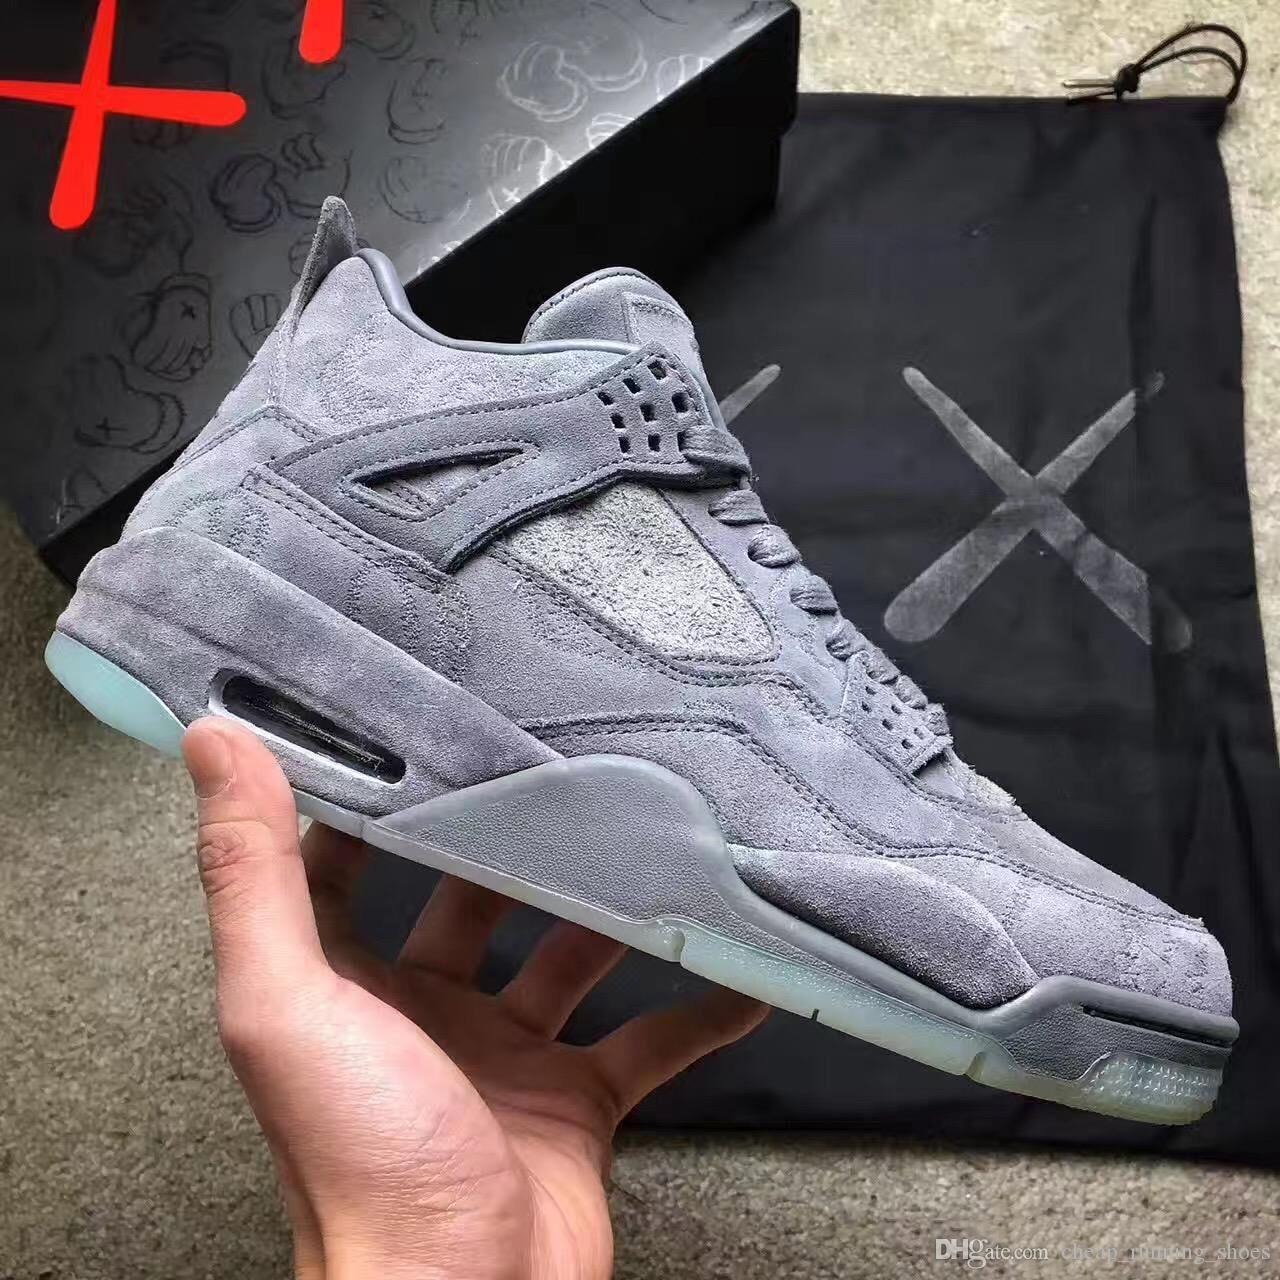 cf99aebd34b4 KAWS X 4 XX Kaws Cool Grey White Black Glow Basketball Shoes Mens Best  Quality White Blue Black Sports Sneakers Shoes Mens Online Shoes From ...